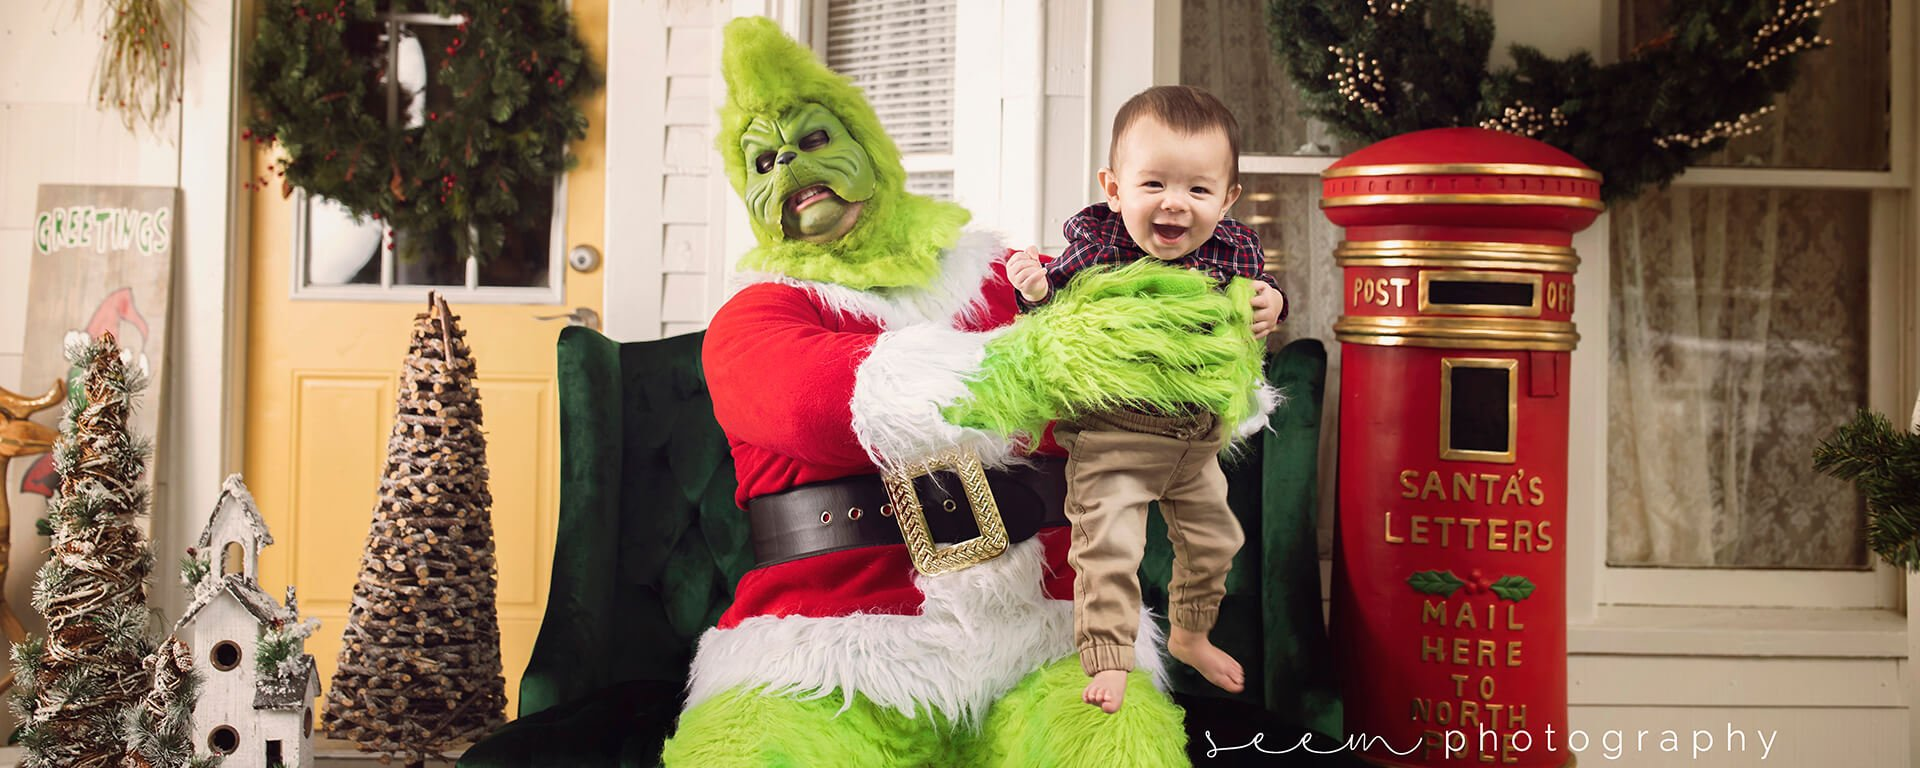 SEEM photography Grinch Stinky Baby